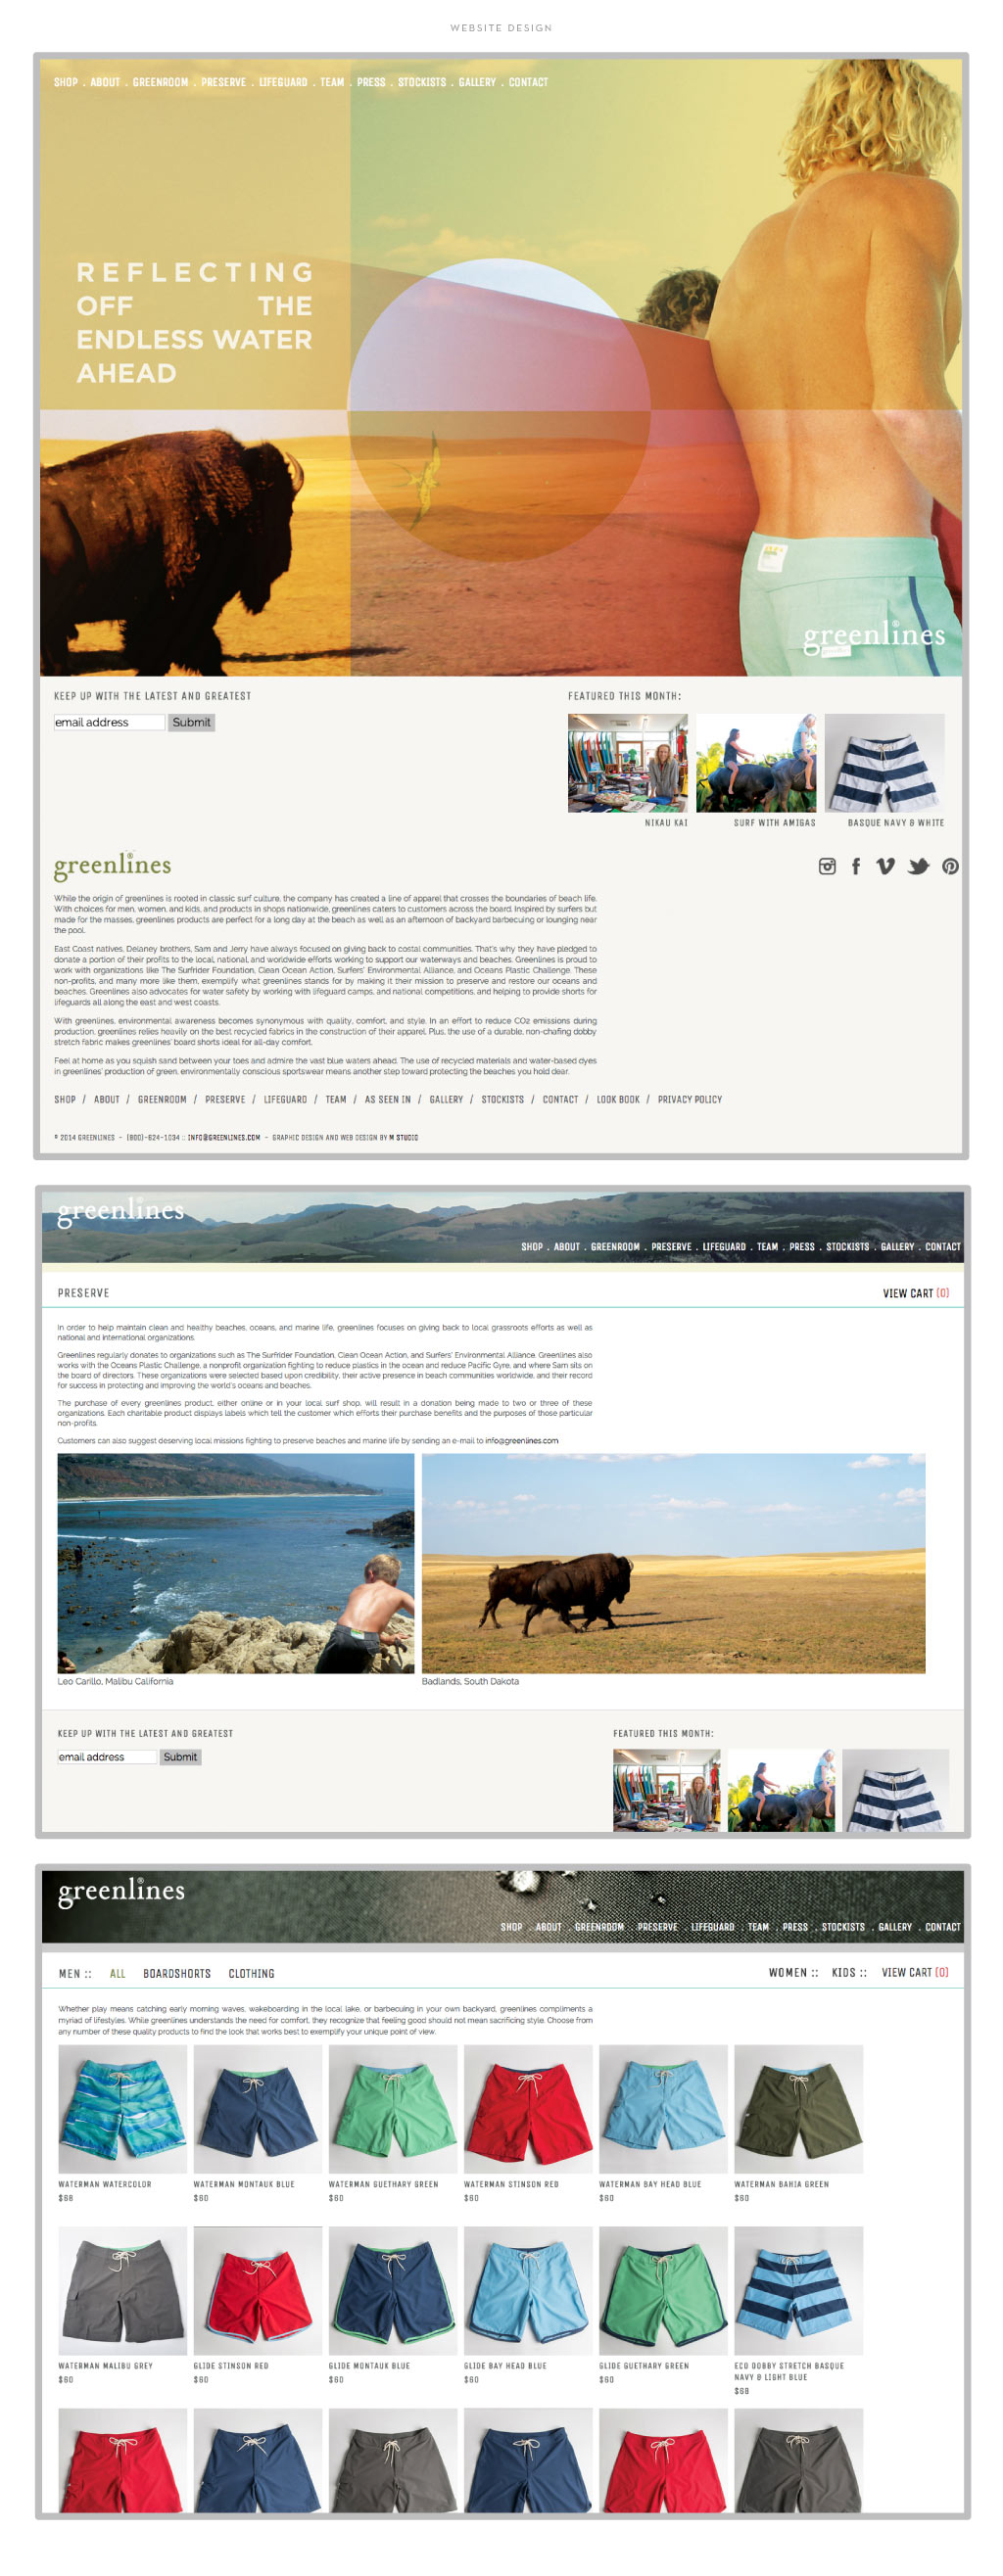 Greenlines web design by M studio